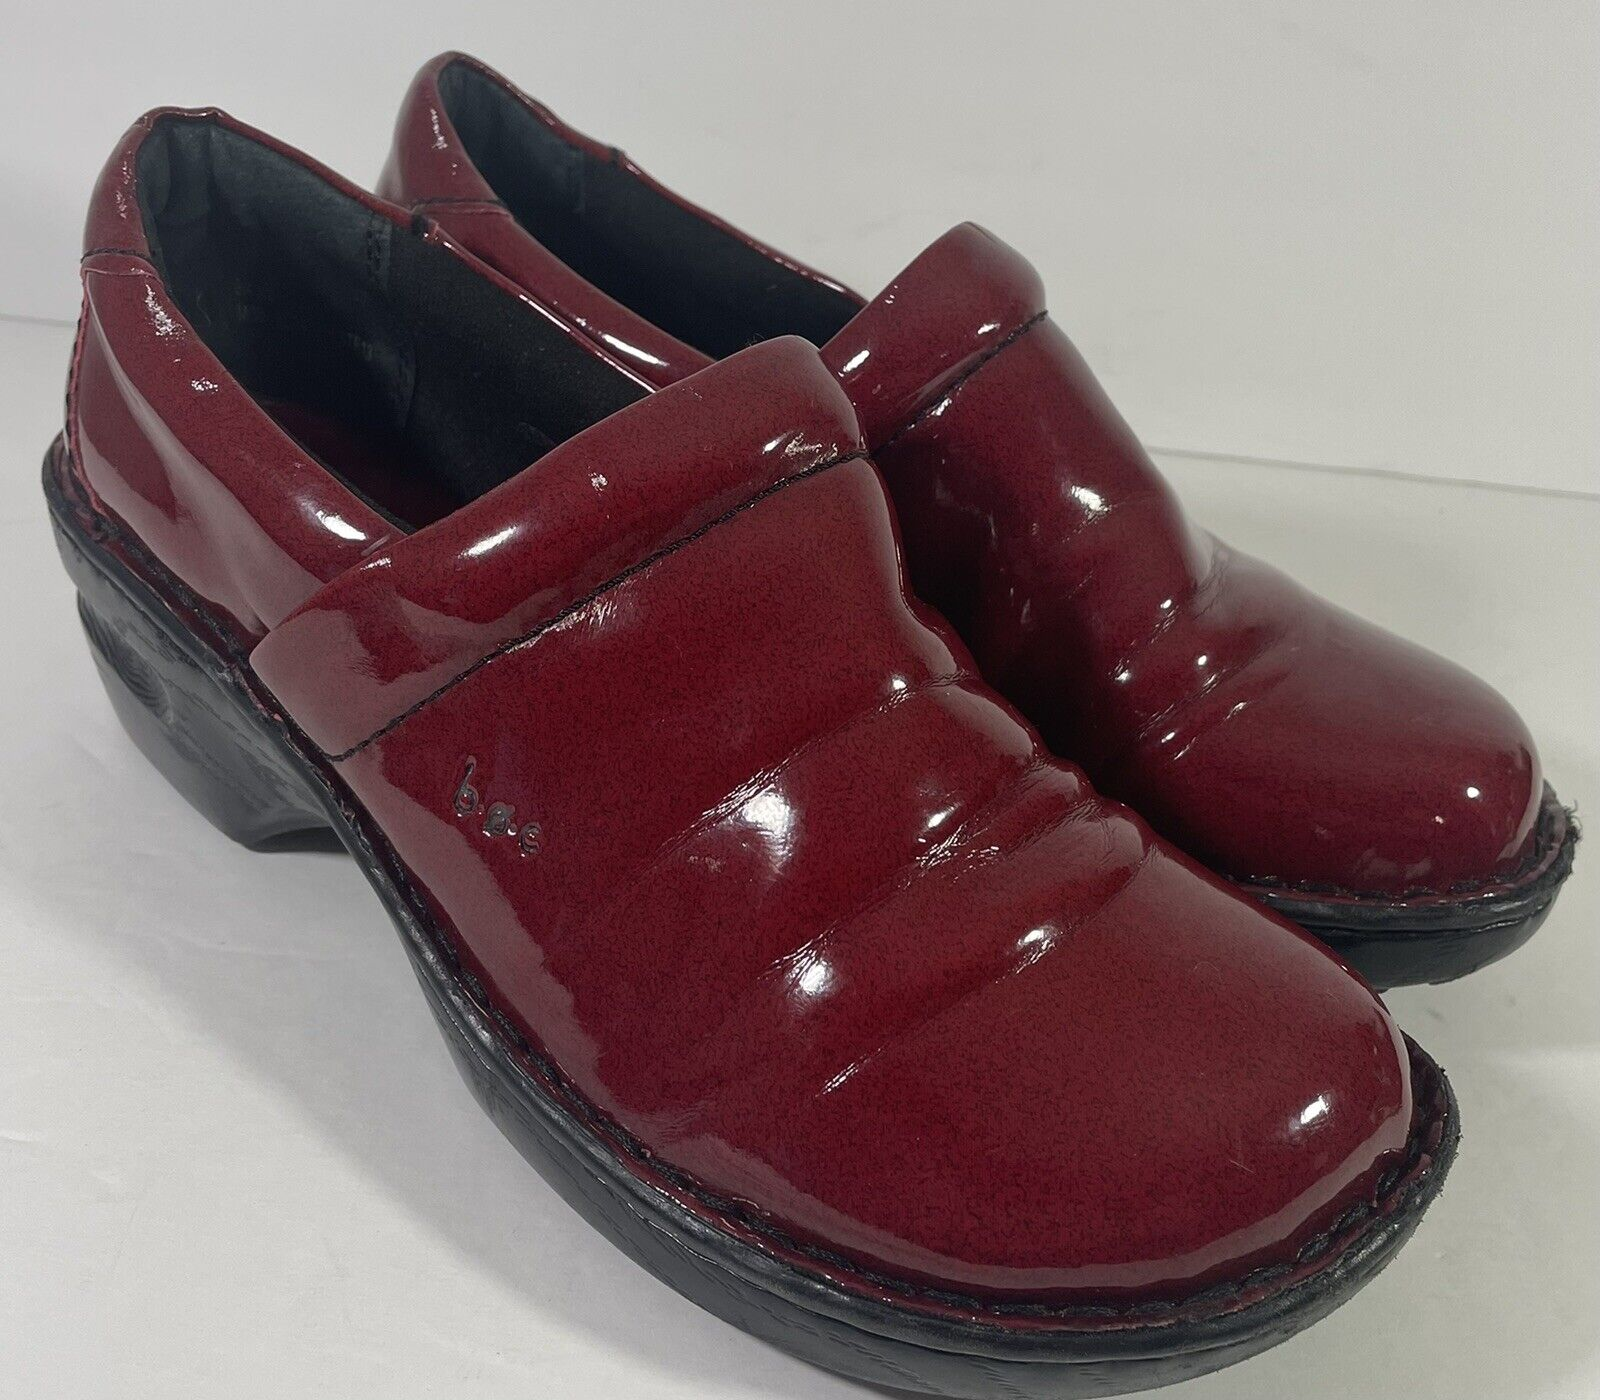 Born BOC Womens Red Faux Patent Leather Clogs Slip On Shoes Comfort Size 9